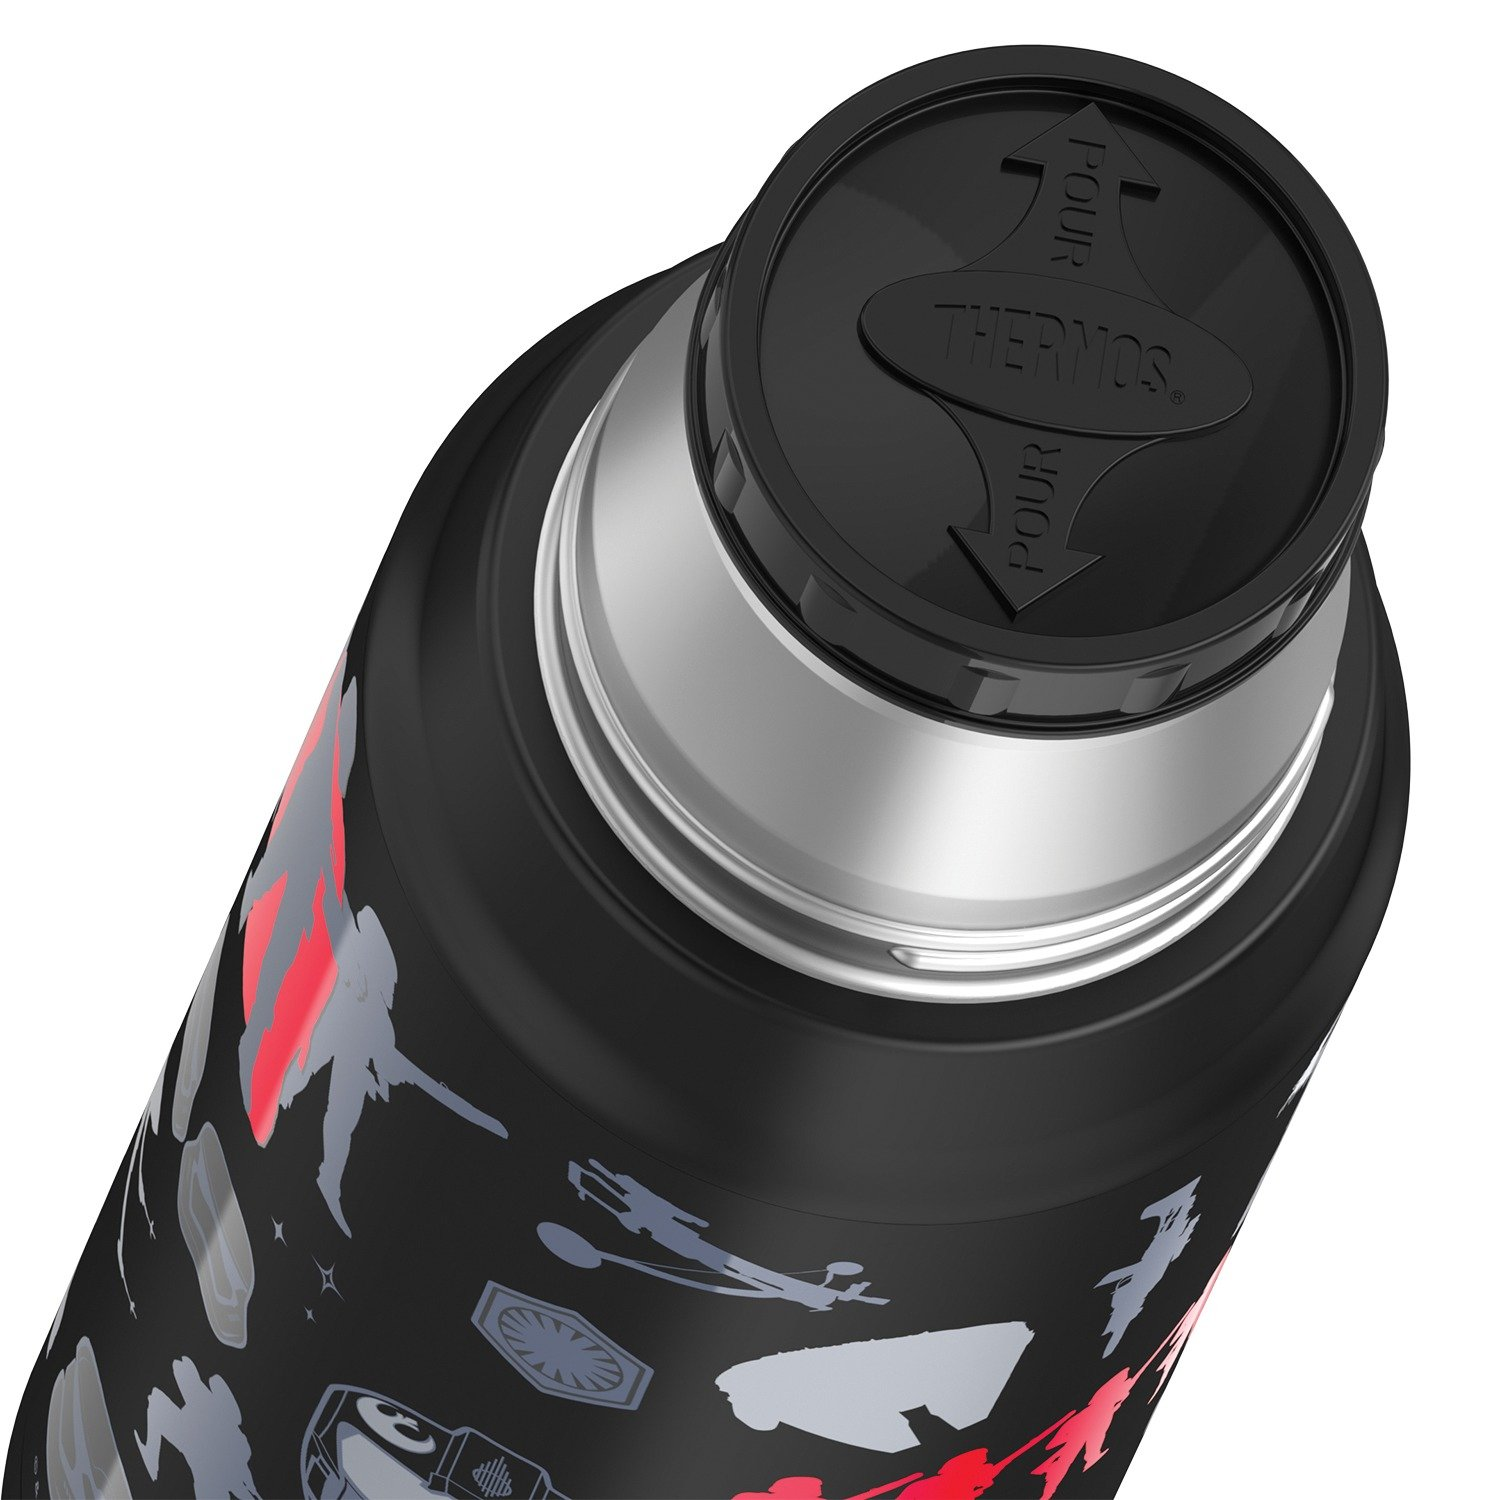 16-Ounce Thermos Stainless Steel Compact Bottle - Star Wars Episode VII #TNF